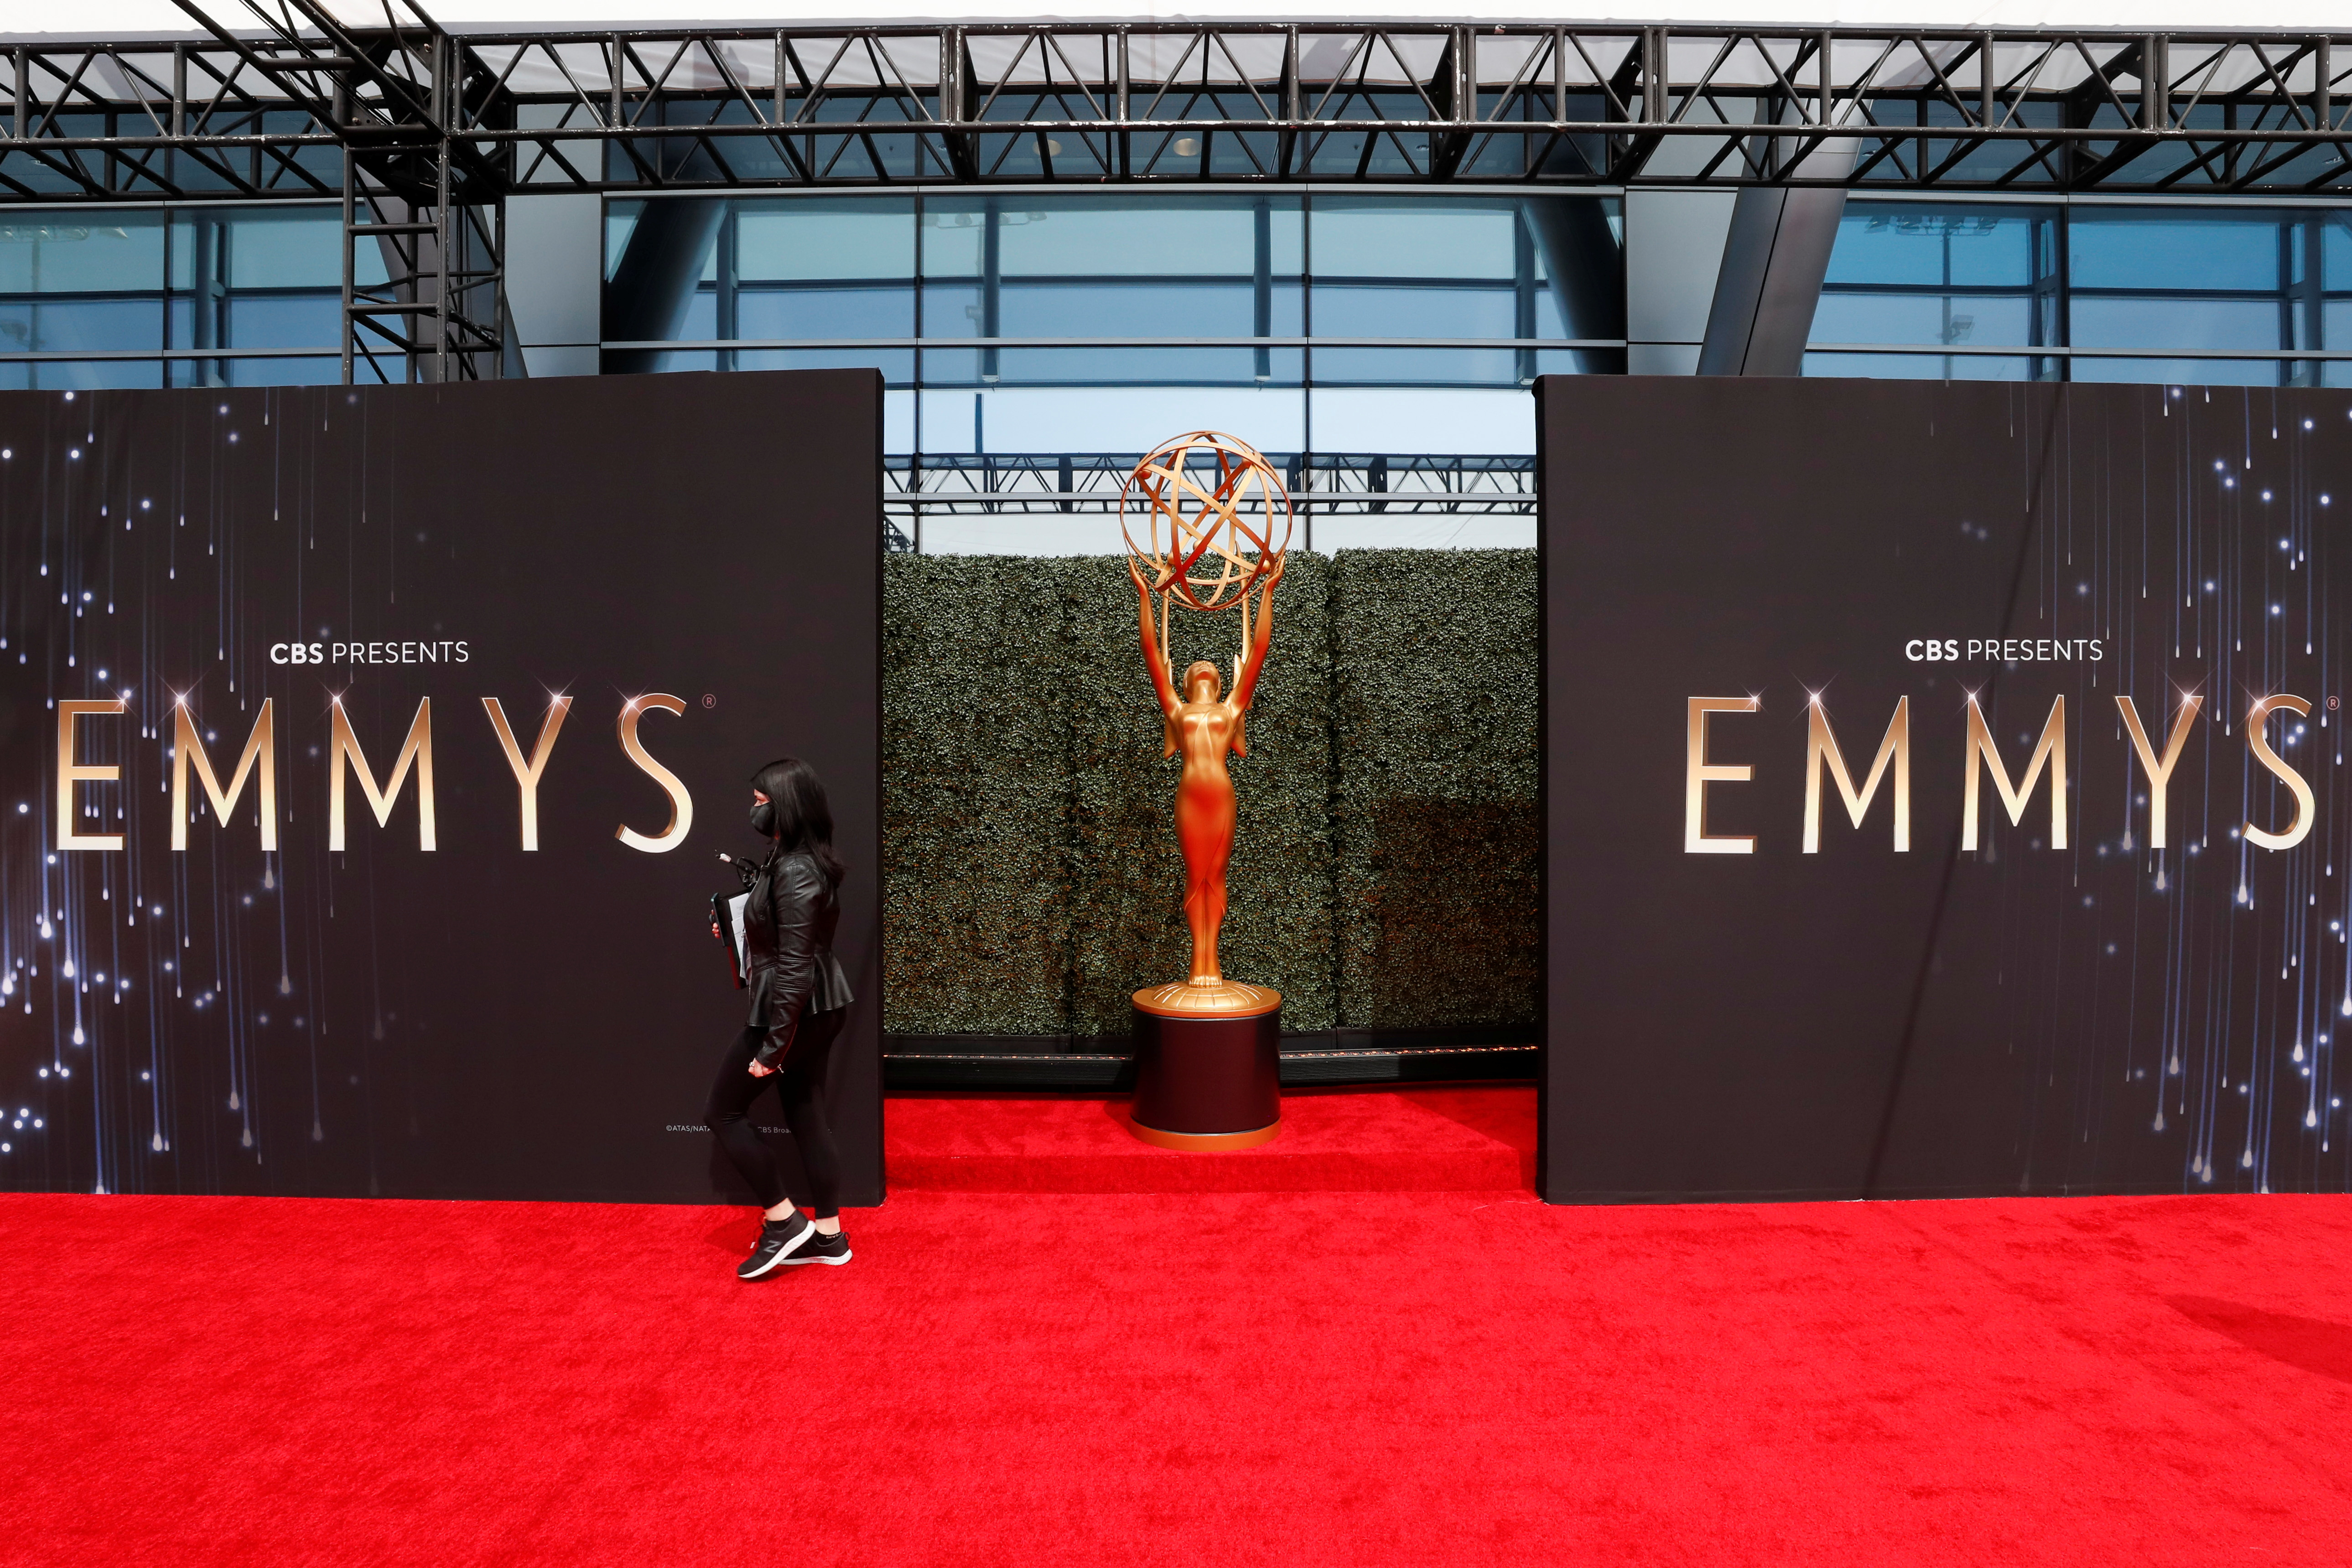 A person walks on the red carpet ahead of the 73rd Primetime Emmy Awards in Los Angeles, U.S., September 19, 2021. REUTERS/Mario Anzuoni